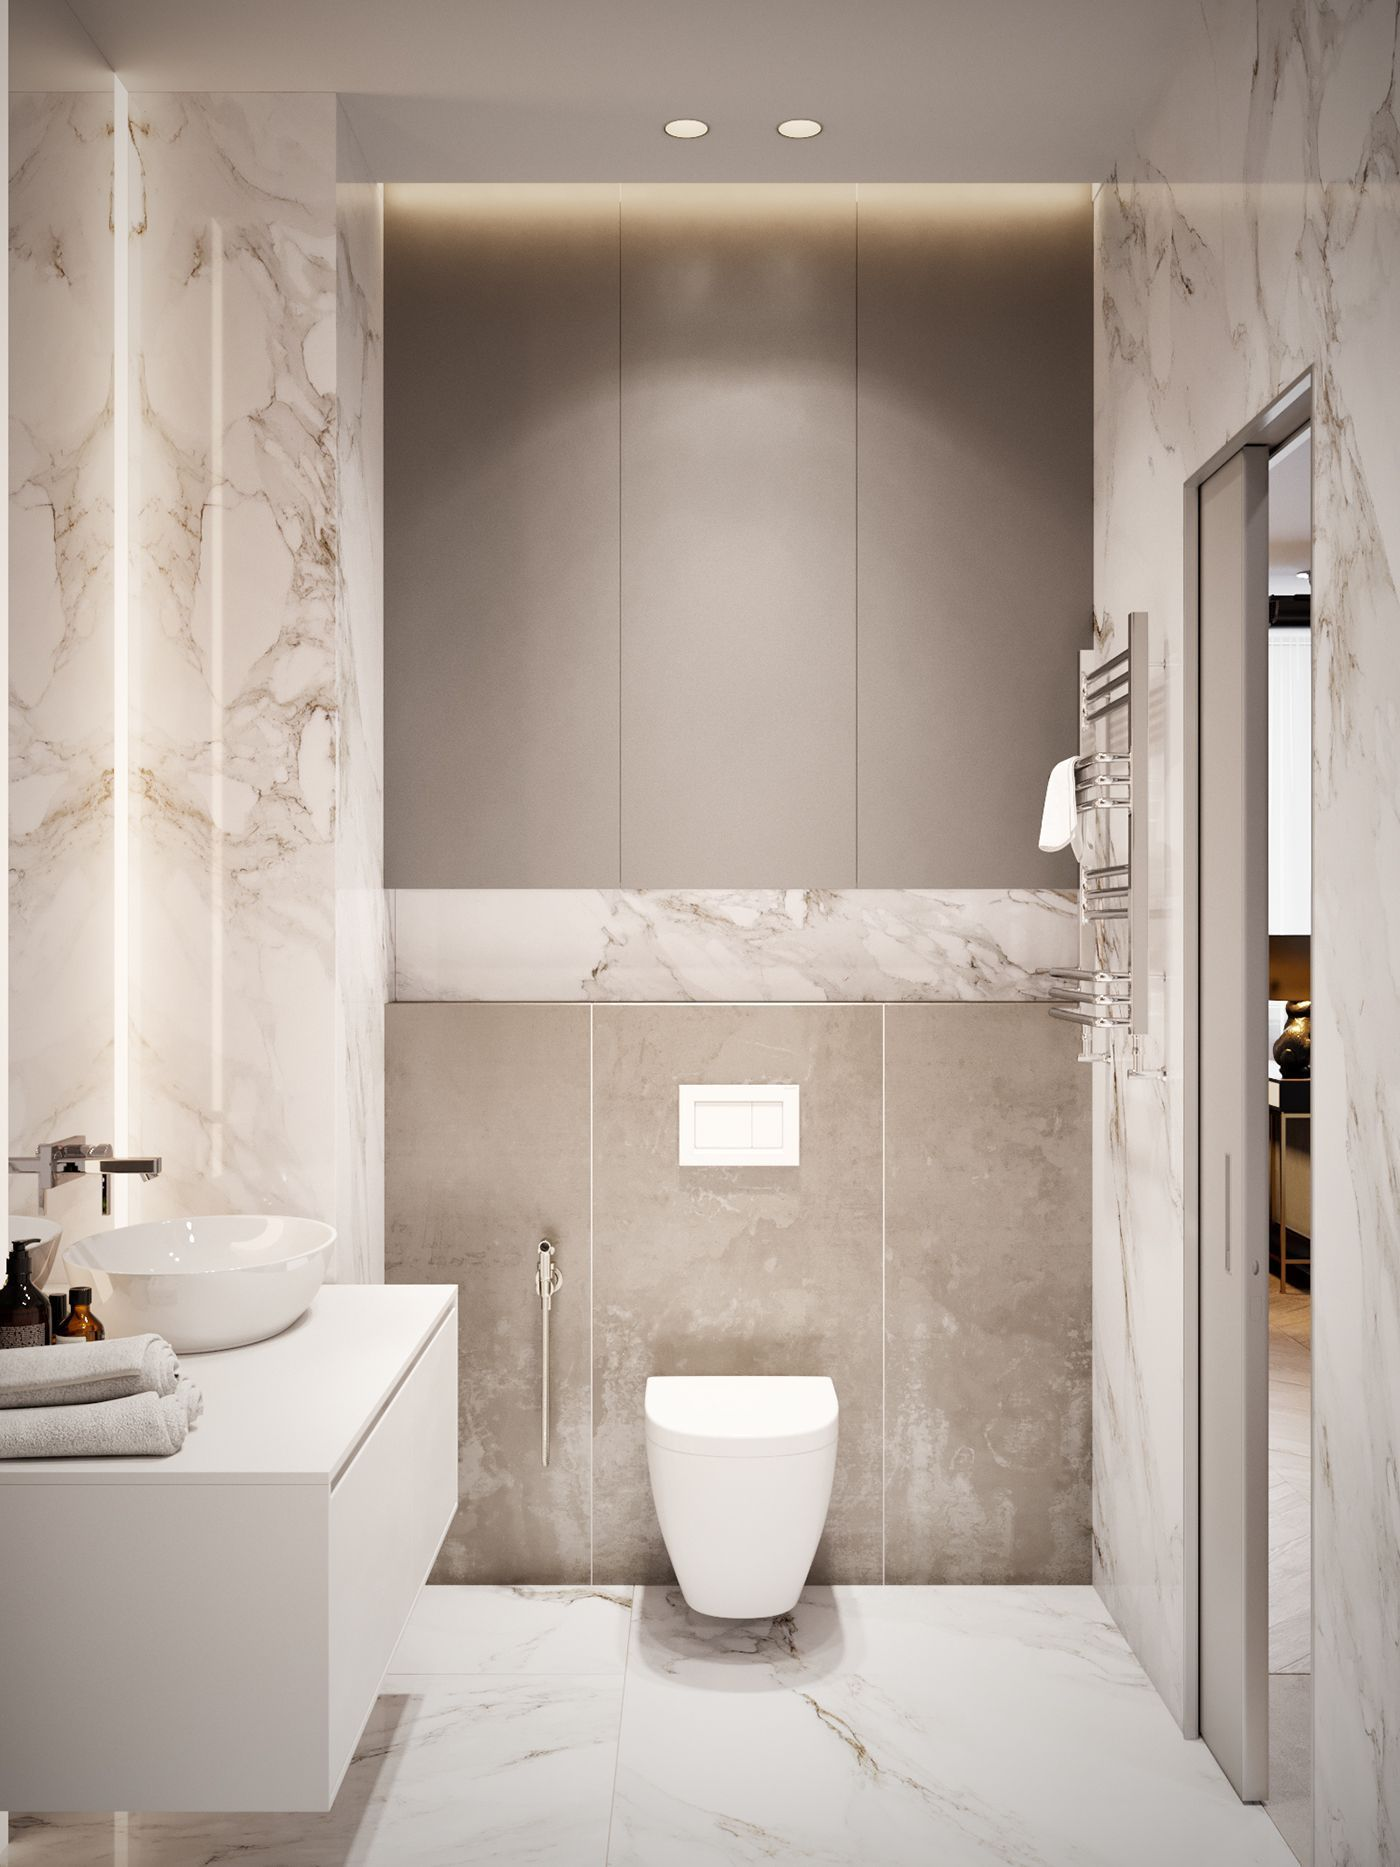 Working On A Bathroom Project We Can Help You With Some Marble Inspirations Discover More A Bathroom Interior Design Modern Bathroom Design Bathroom Interior